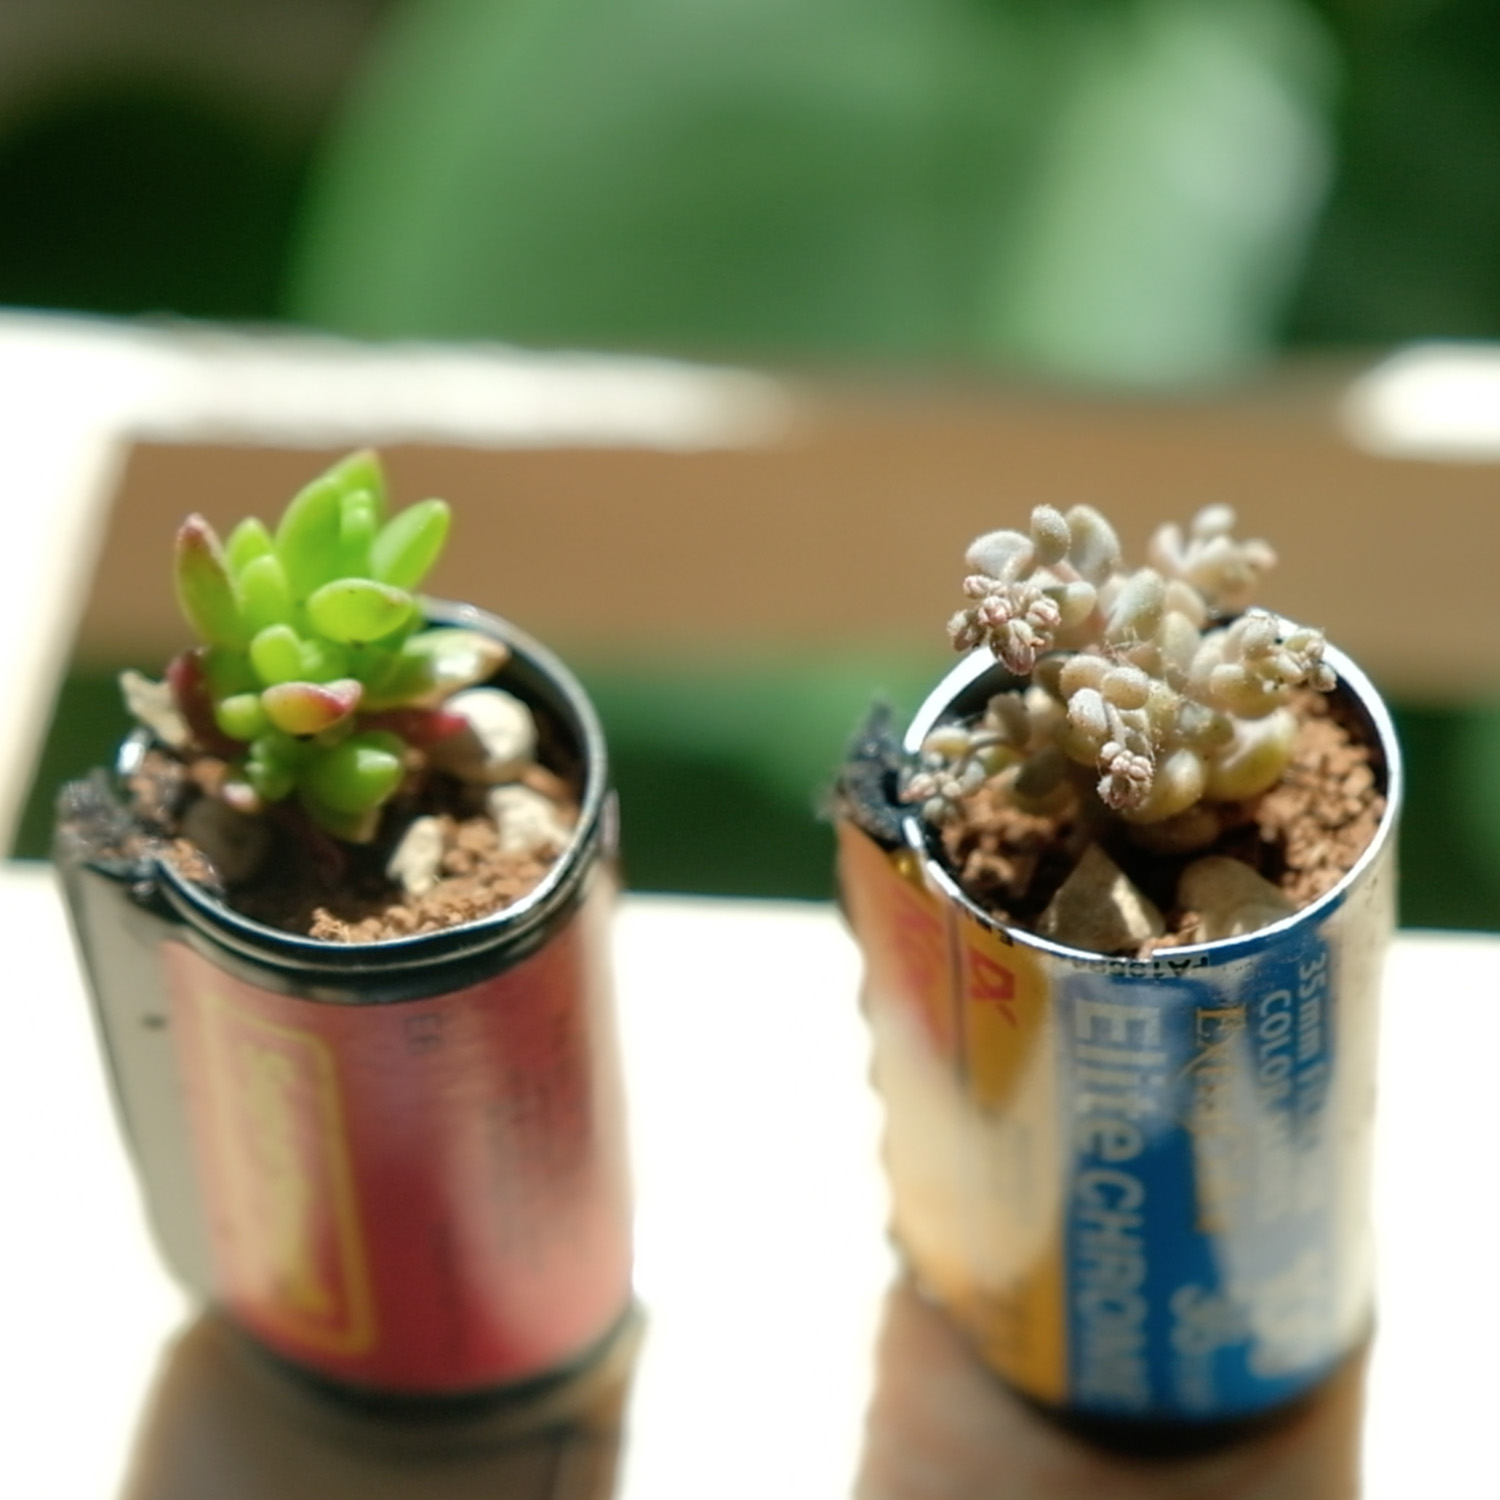 Seedlings in cassettes (Pic: Marina Llopis)